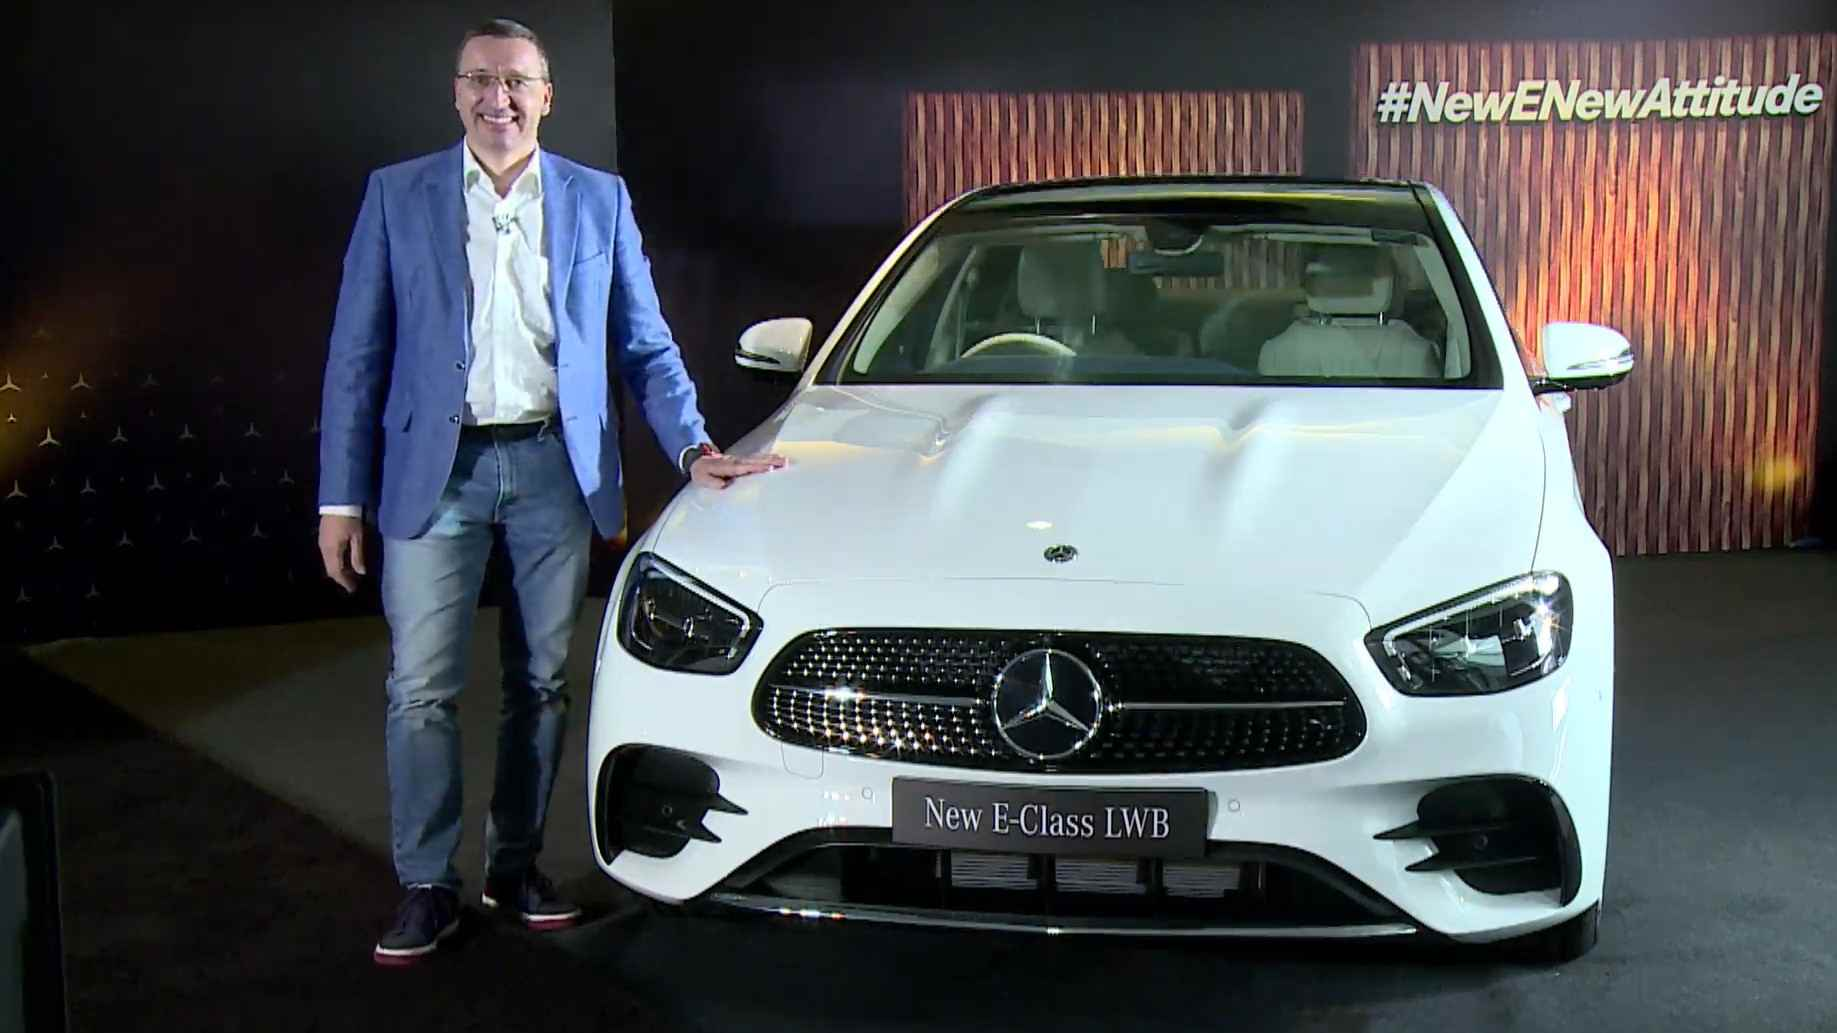 Mercedes-Benz E-Class facelift launched in India, prices range from Rs 63.60-80.90 lakh- Technology News, FP